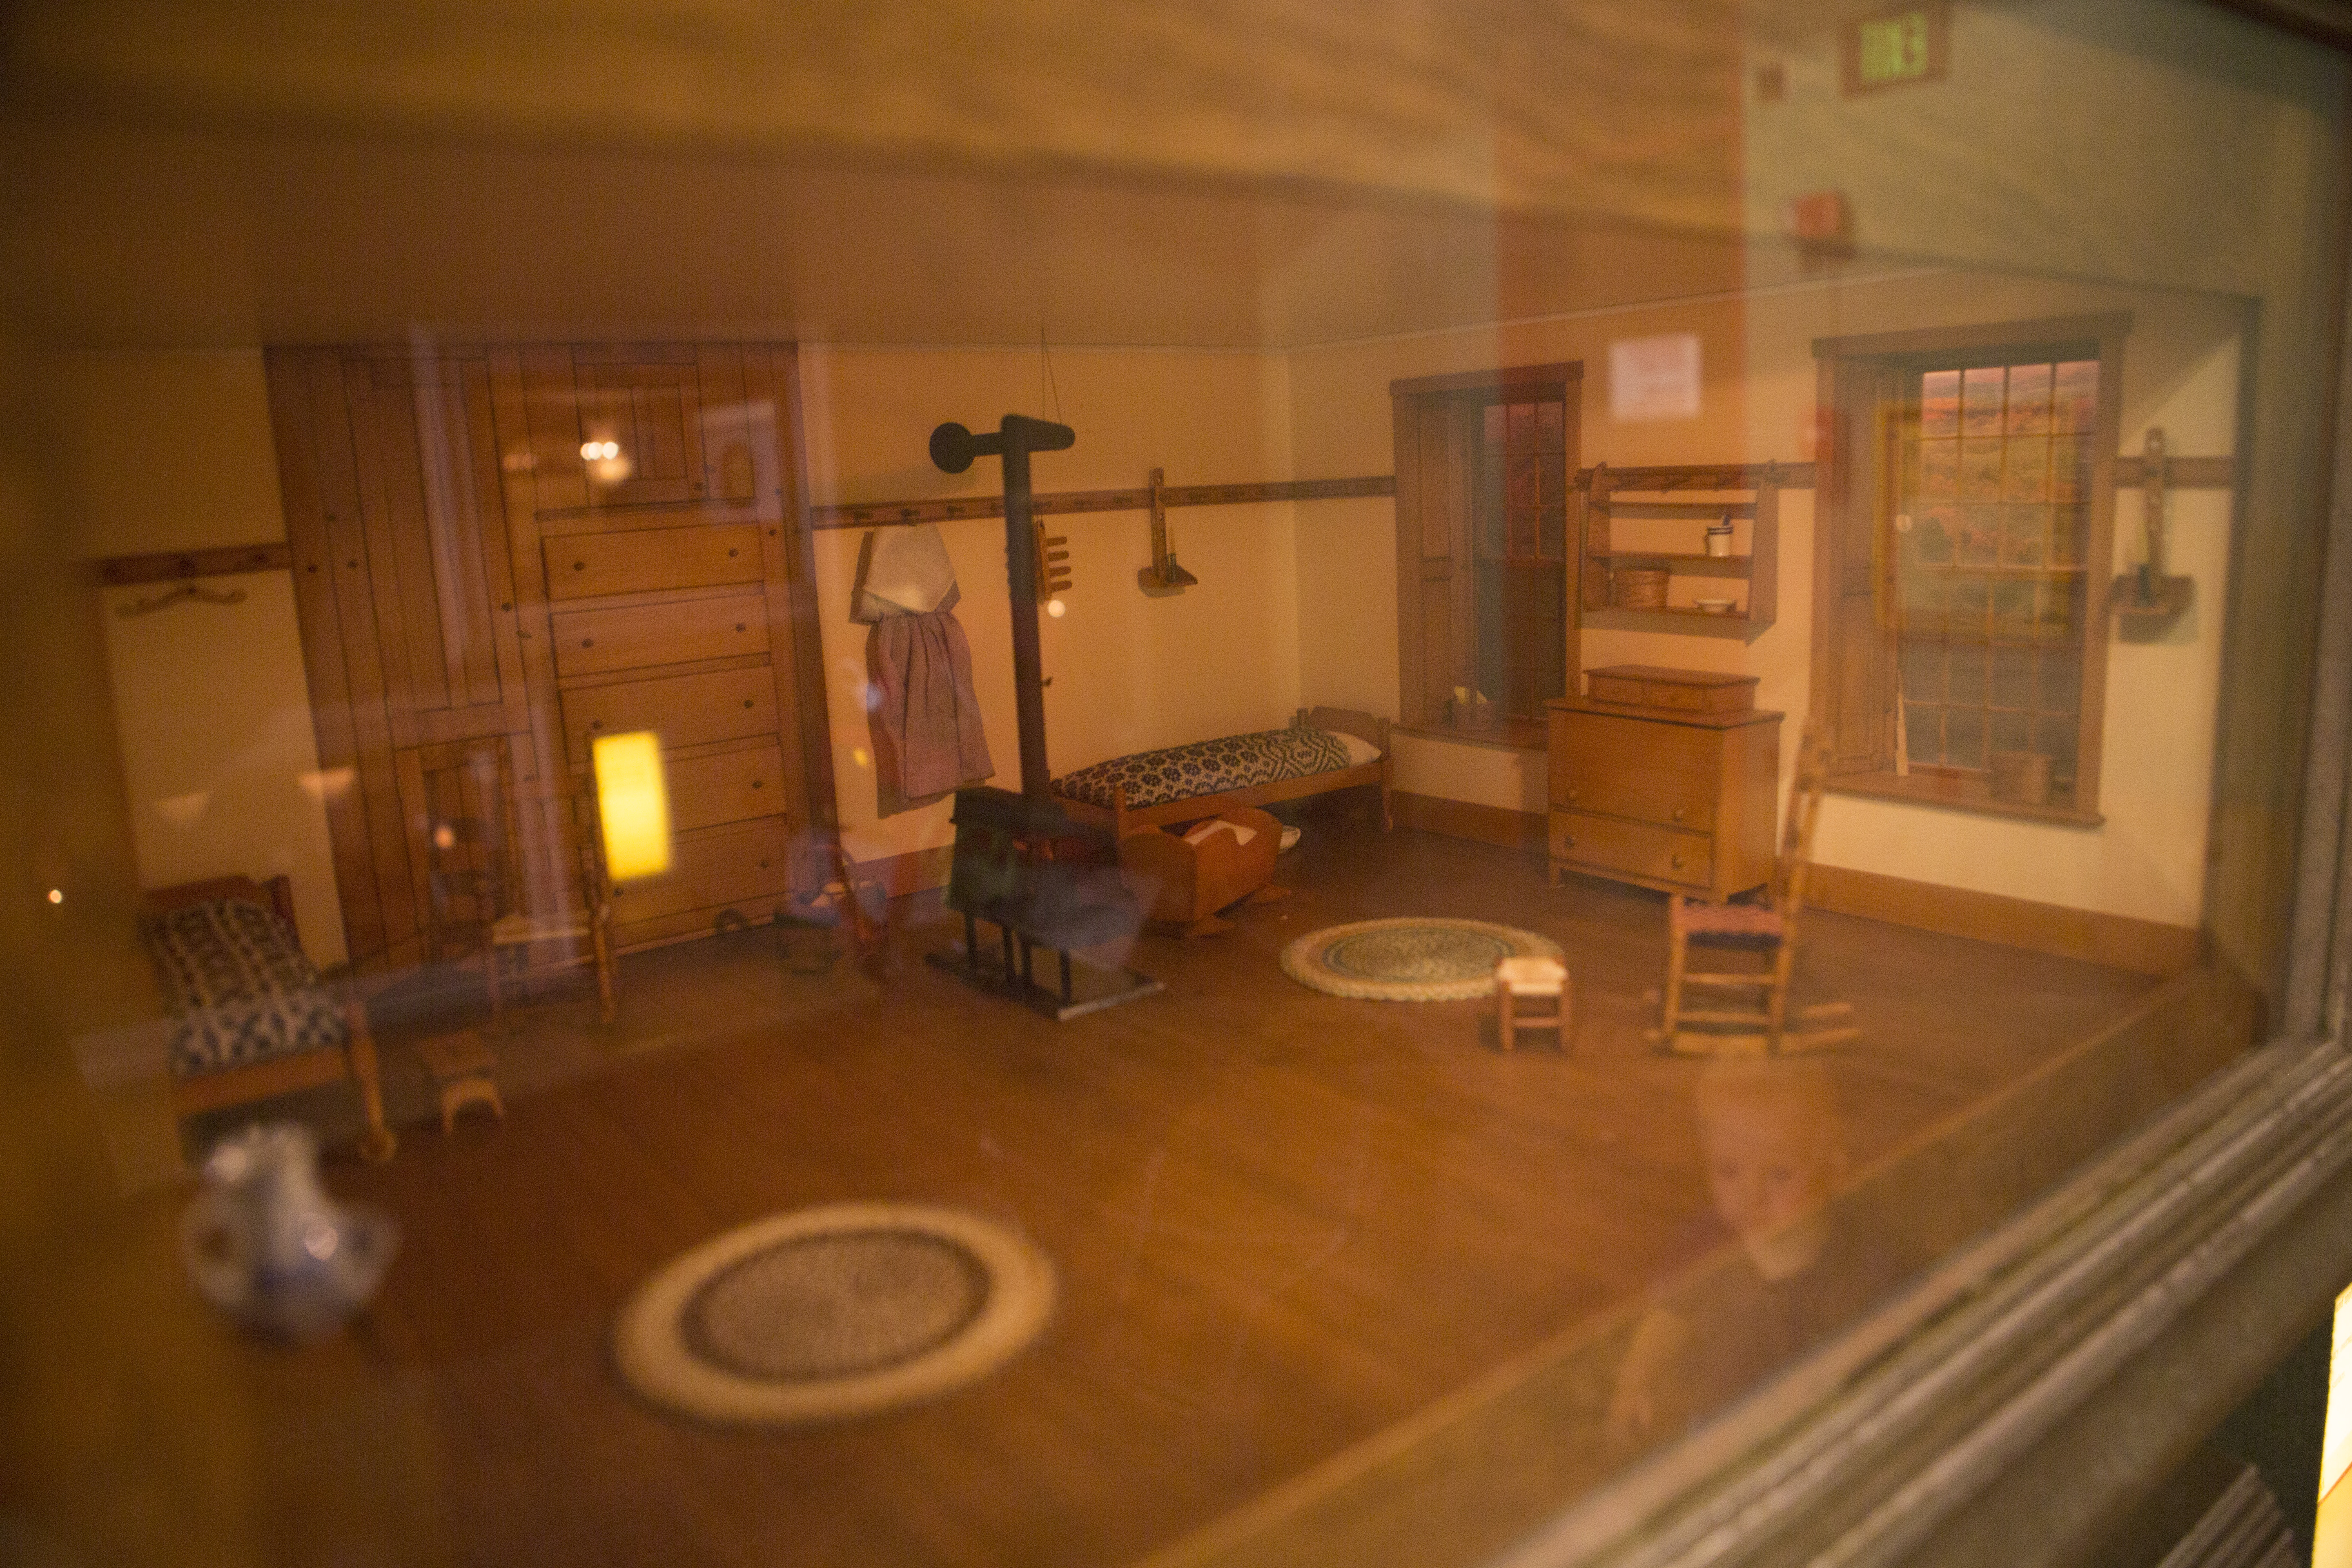 Indianpolis_Childrens_Museum-001_9